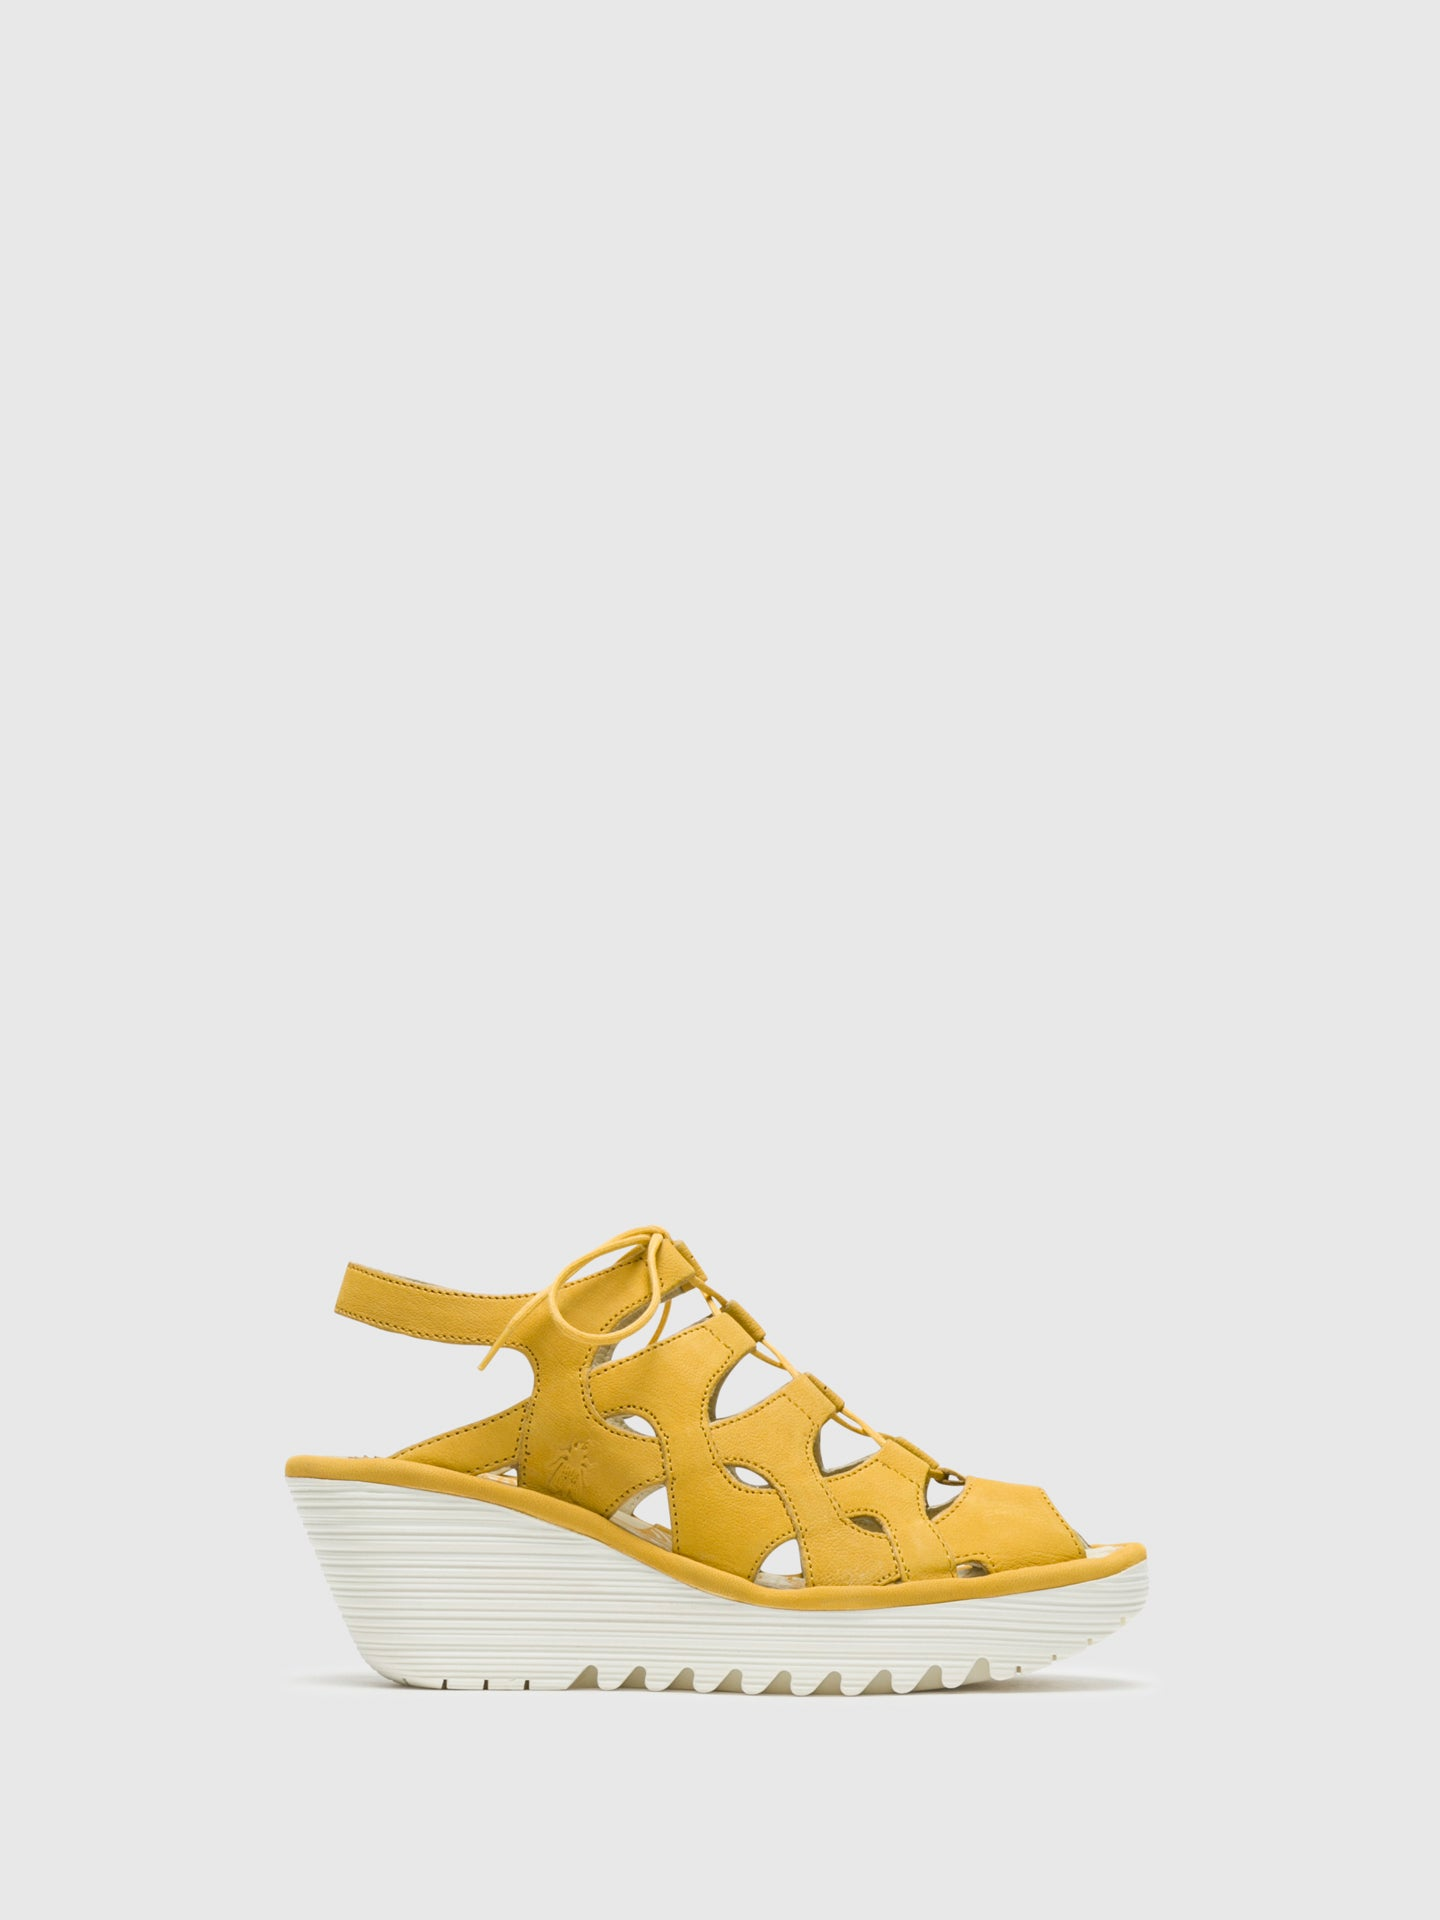 Fly London Yellow Gladiator Sandals